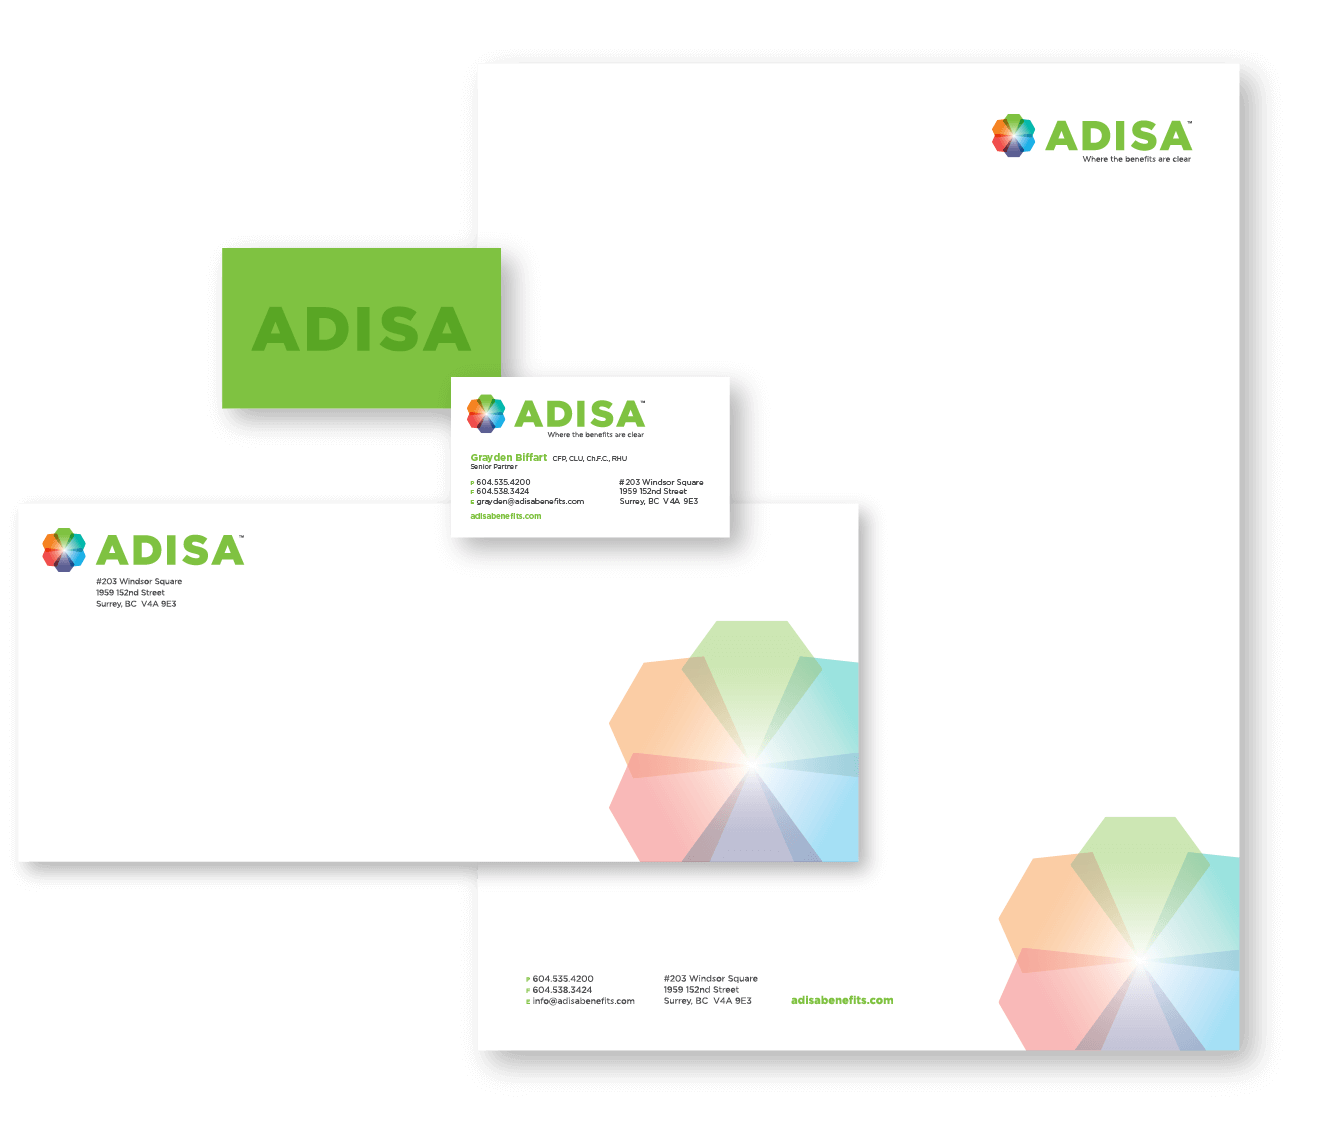 Adisa stationery package